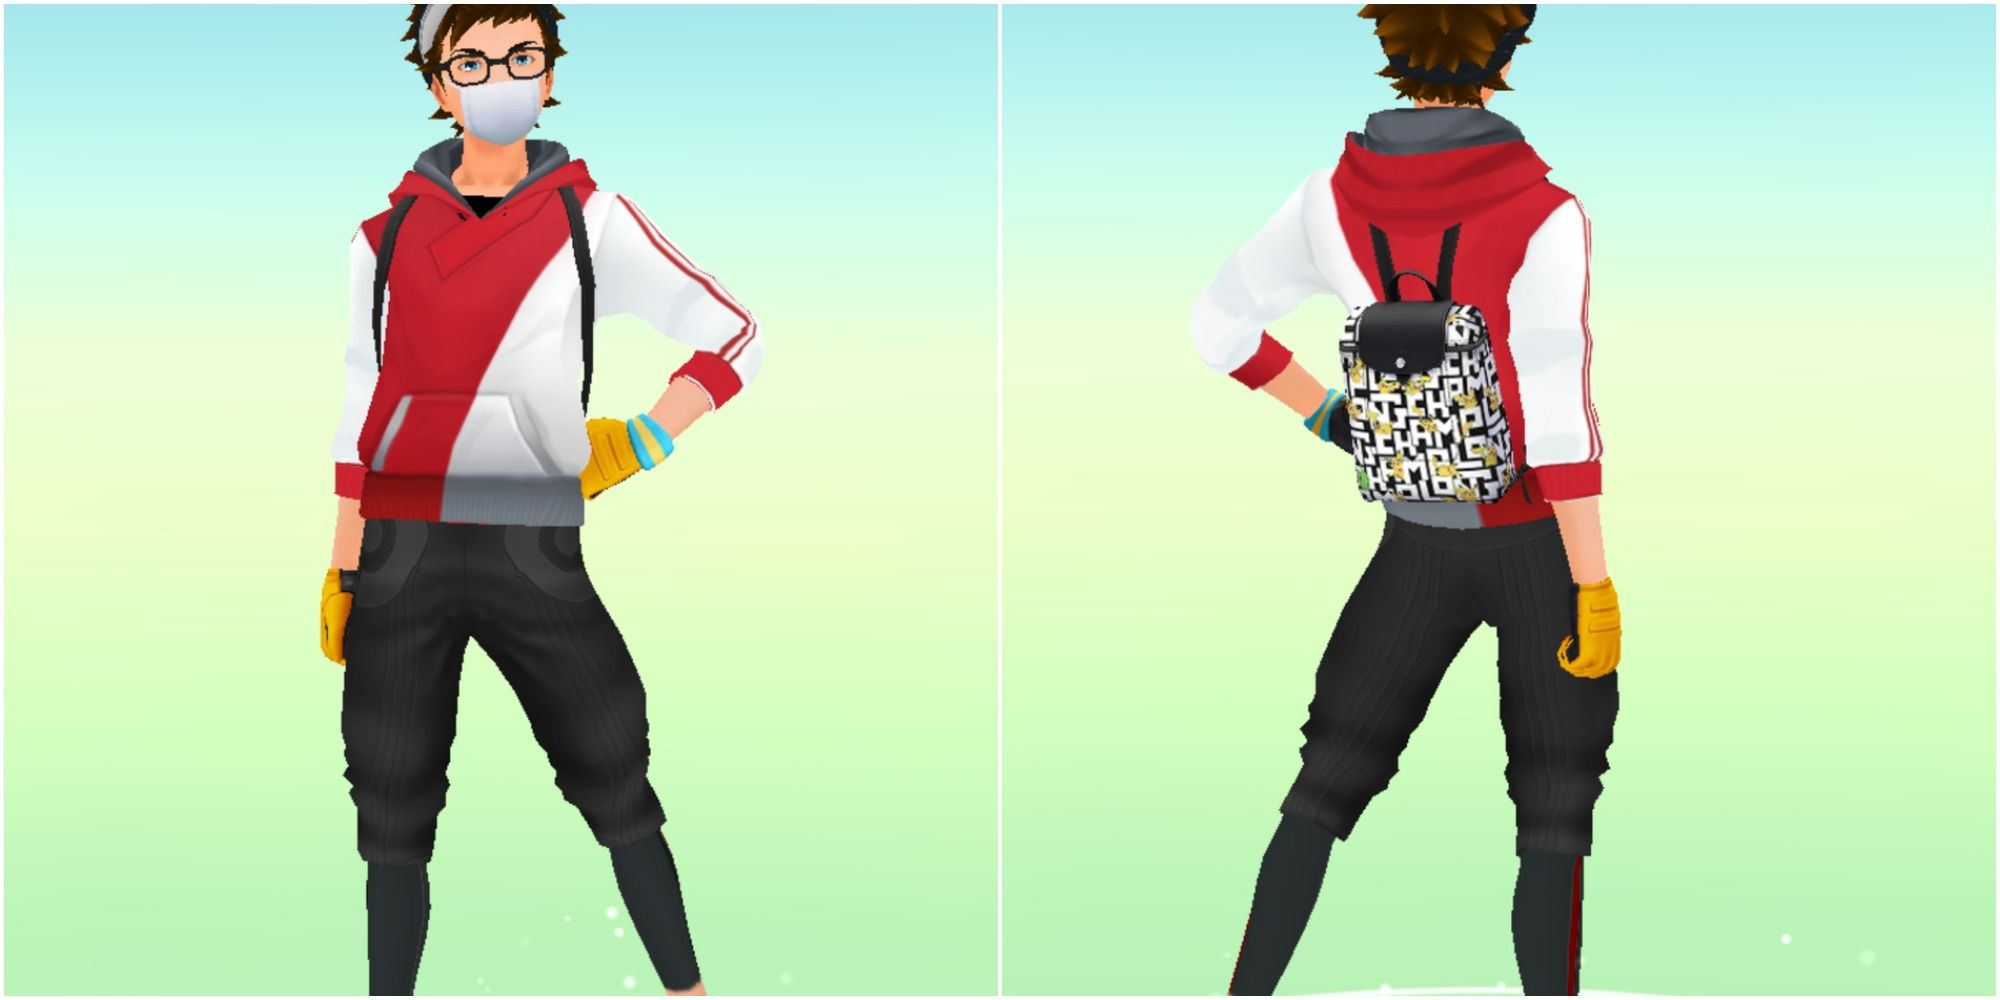 Pokemon GO: Every Avatar Pose And How To Get Them